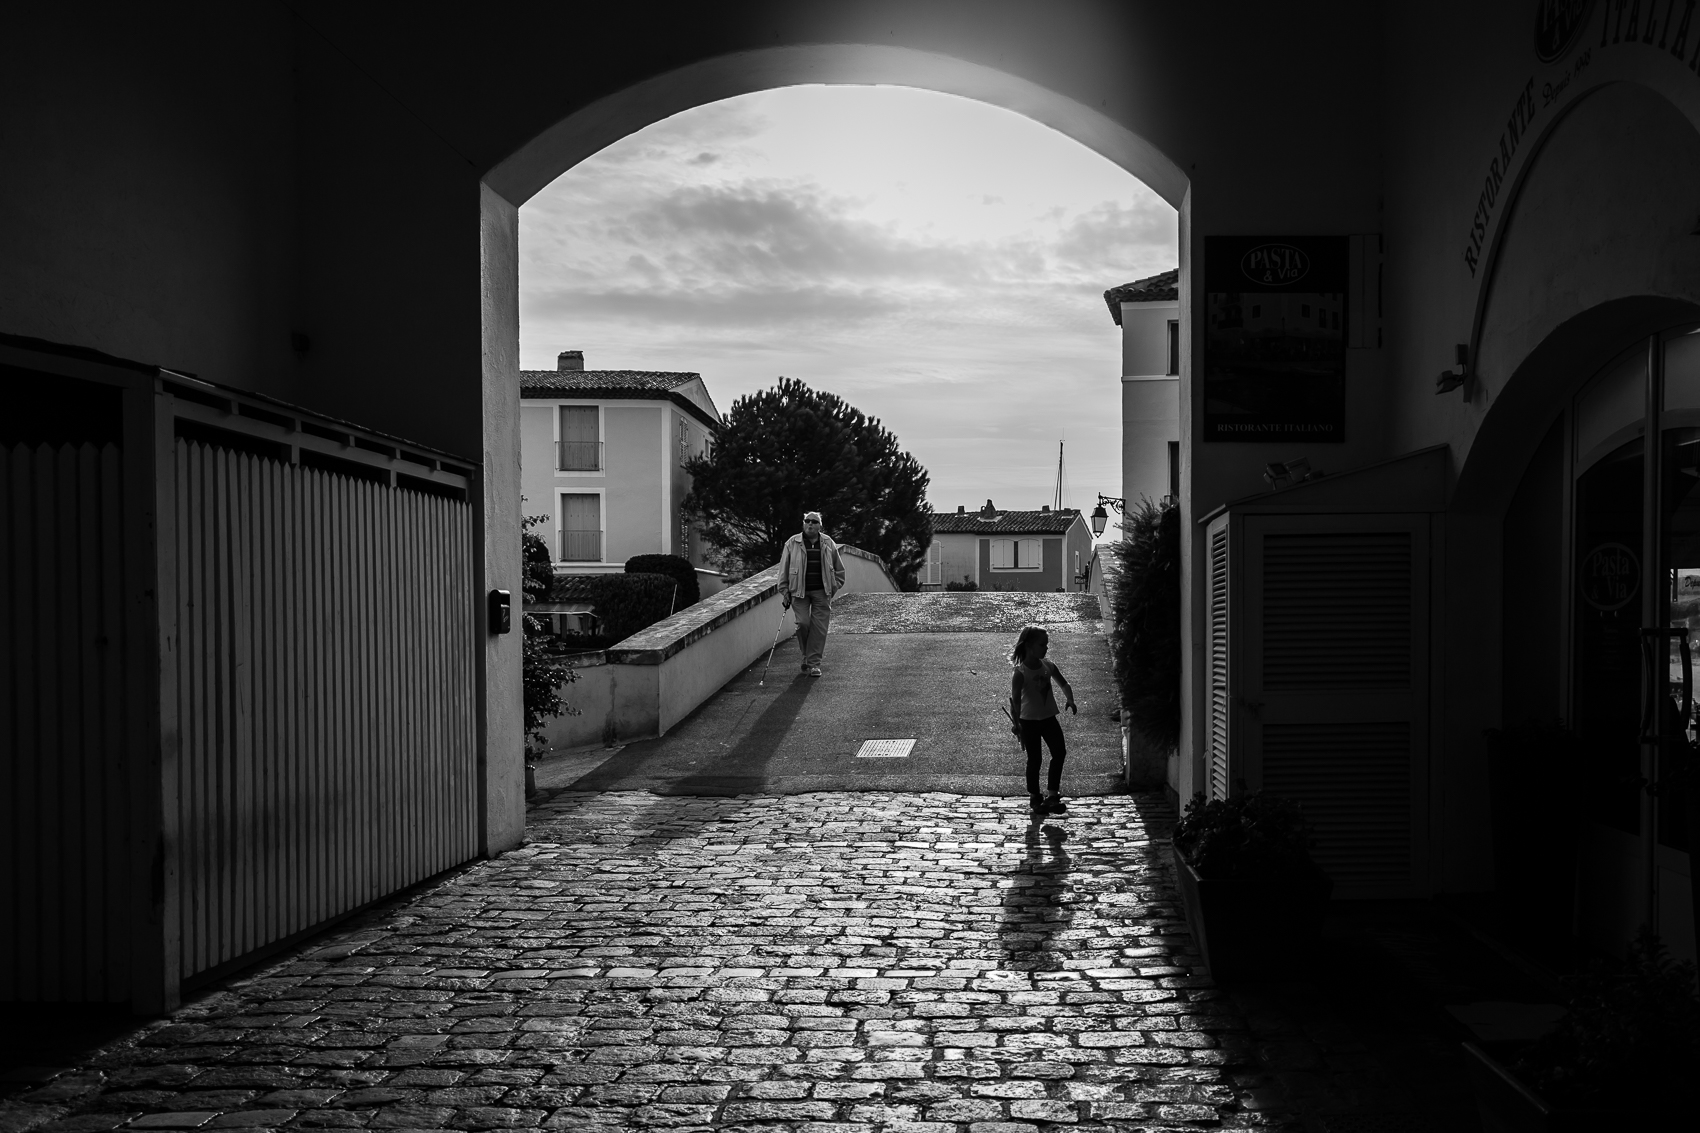 on a little walk about in a village…my kids are now the normal walking along streets exploring while getting to and from where they need to go!